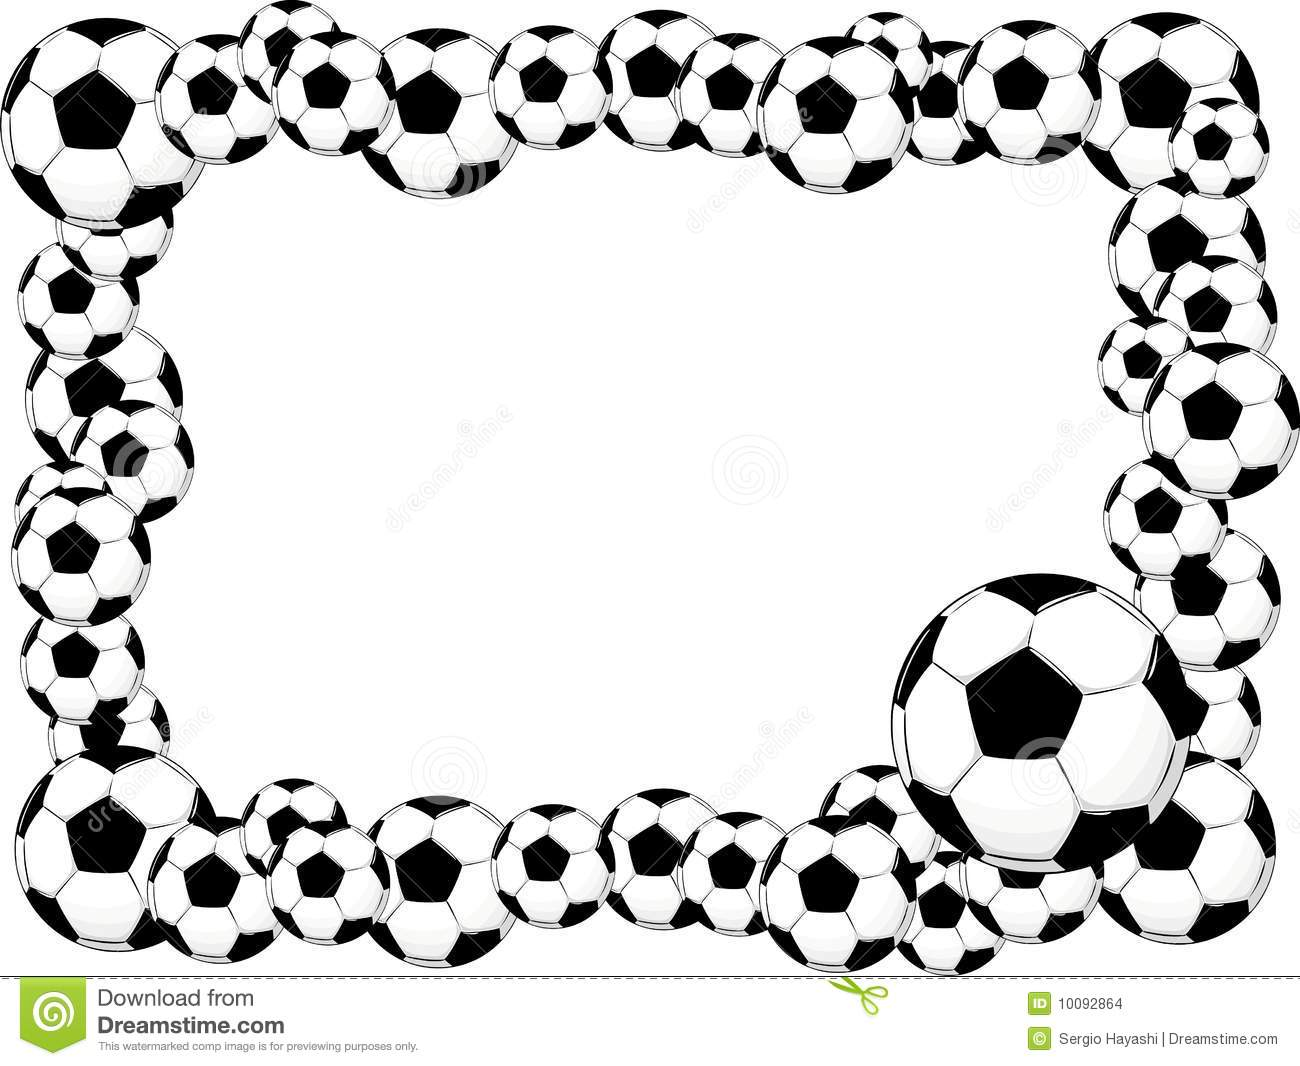 Clipart soccer ball picture royalty free download Clipart soccer balls border - ClipartFest picture royalty free download